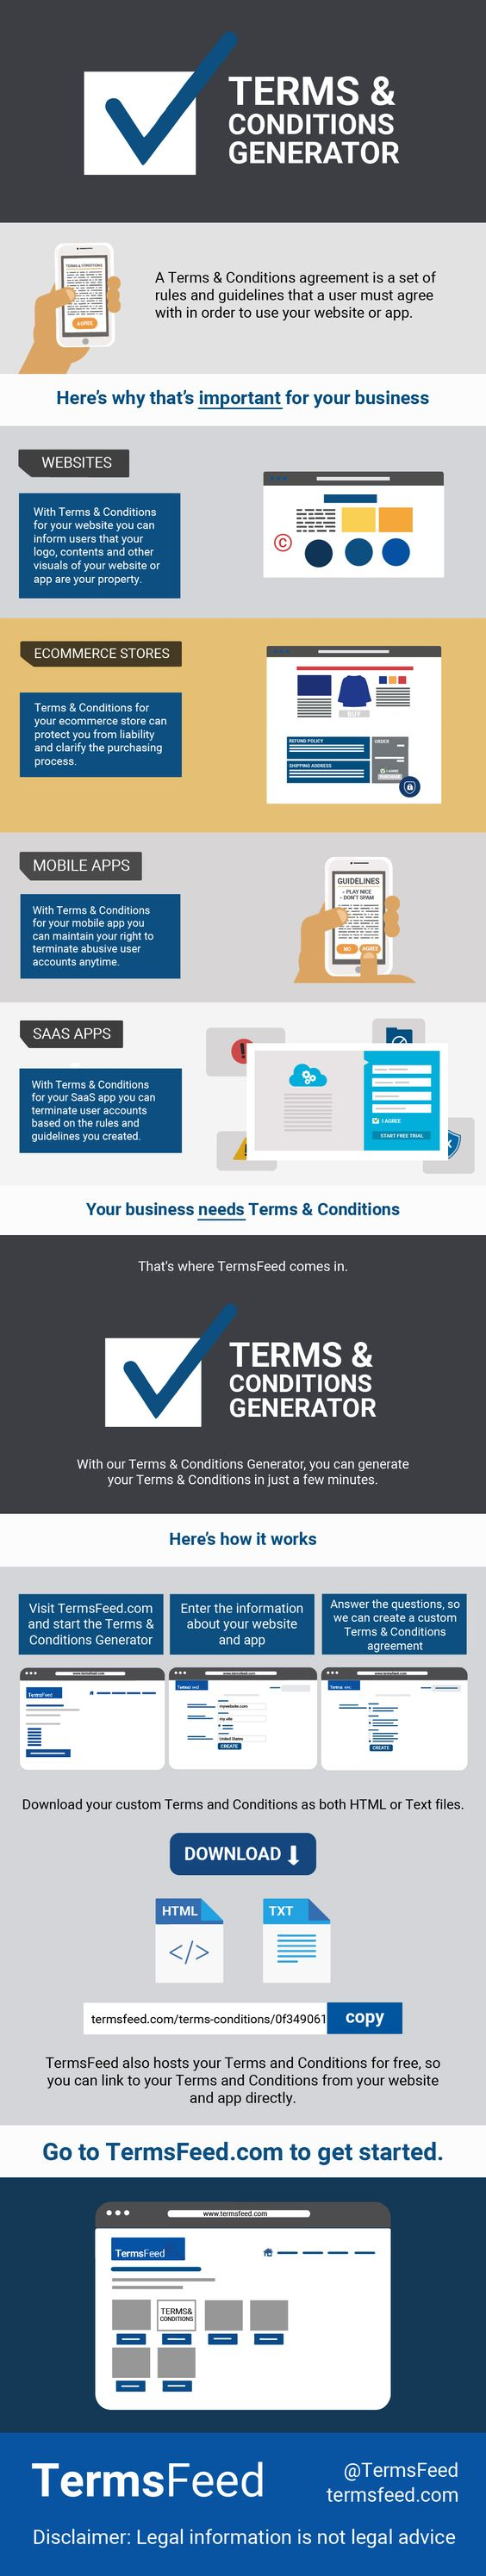 Infographic The Terms Conditions Generator From TermsFeed